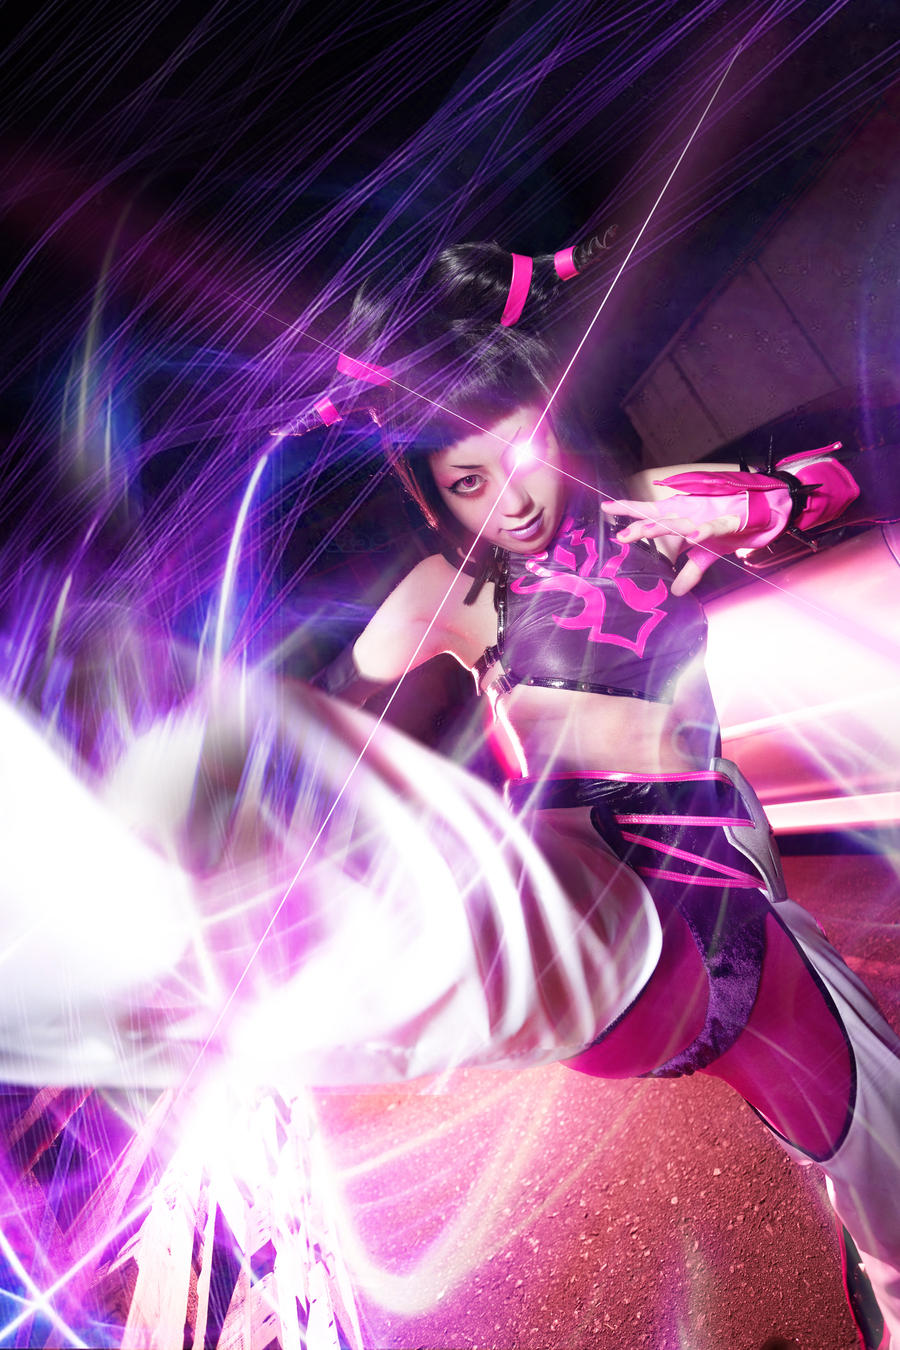 Juri's power by TENinania